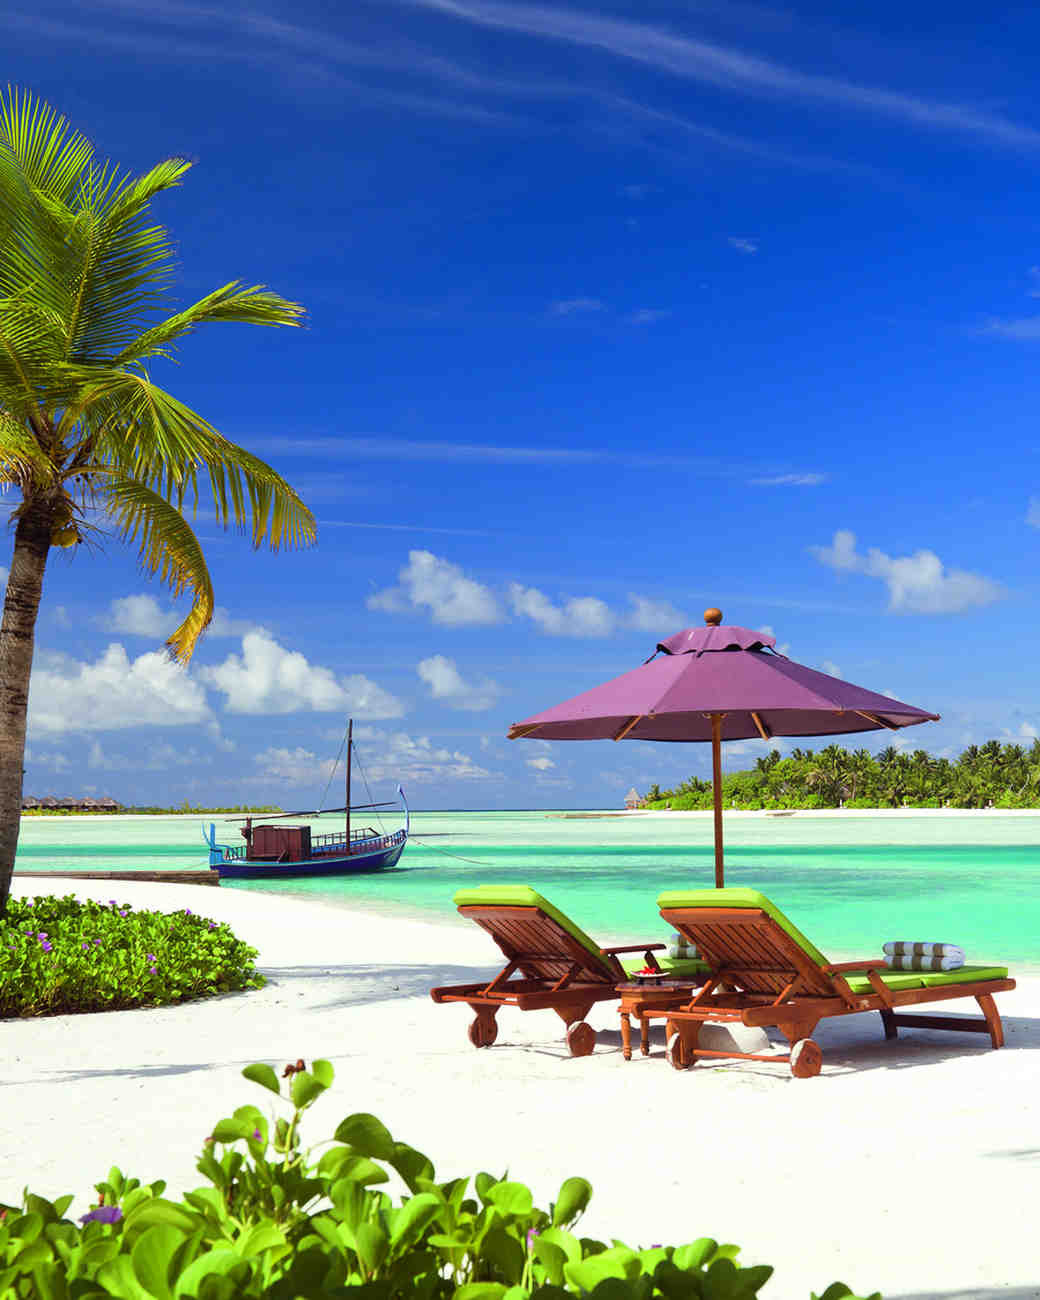 smith-naladhu-the-maldives.jpg